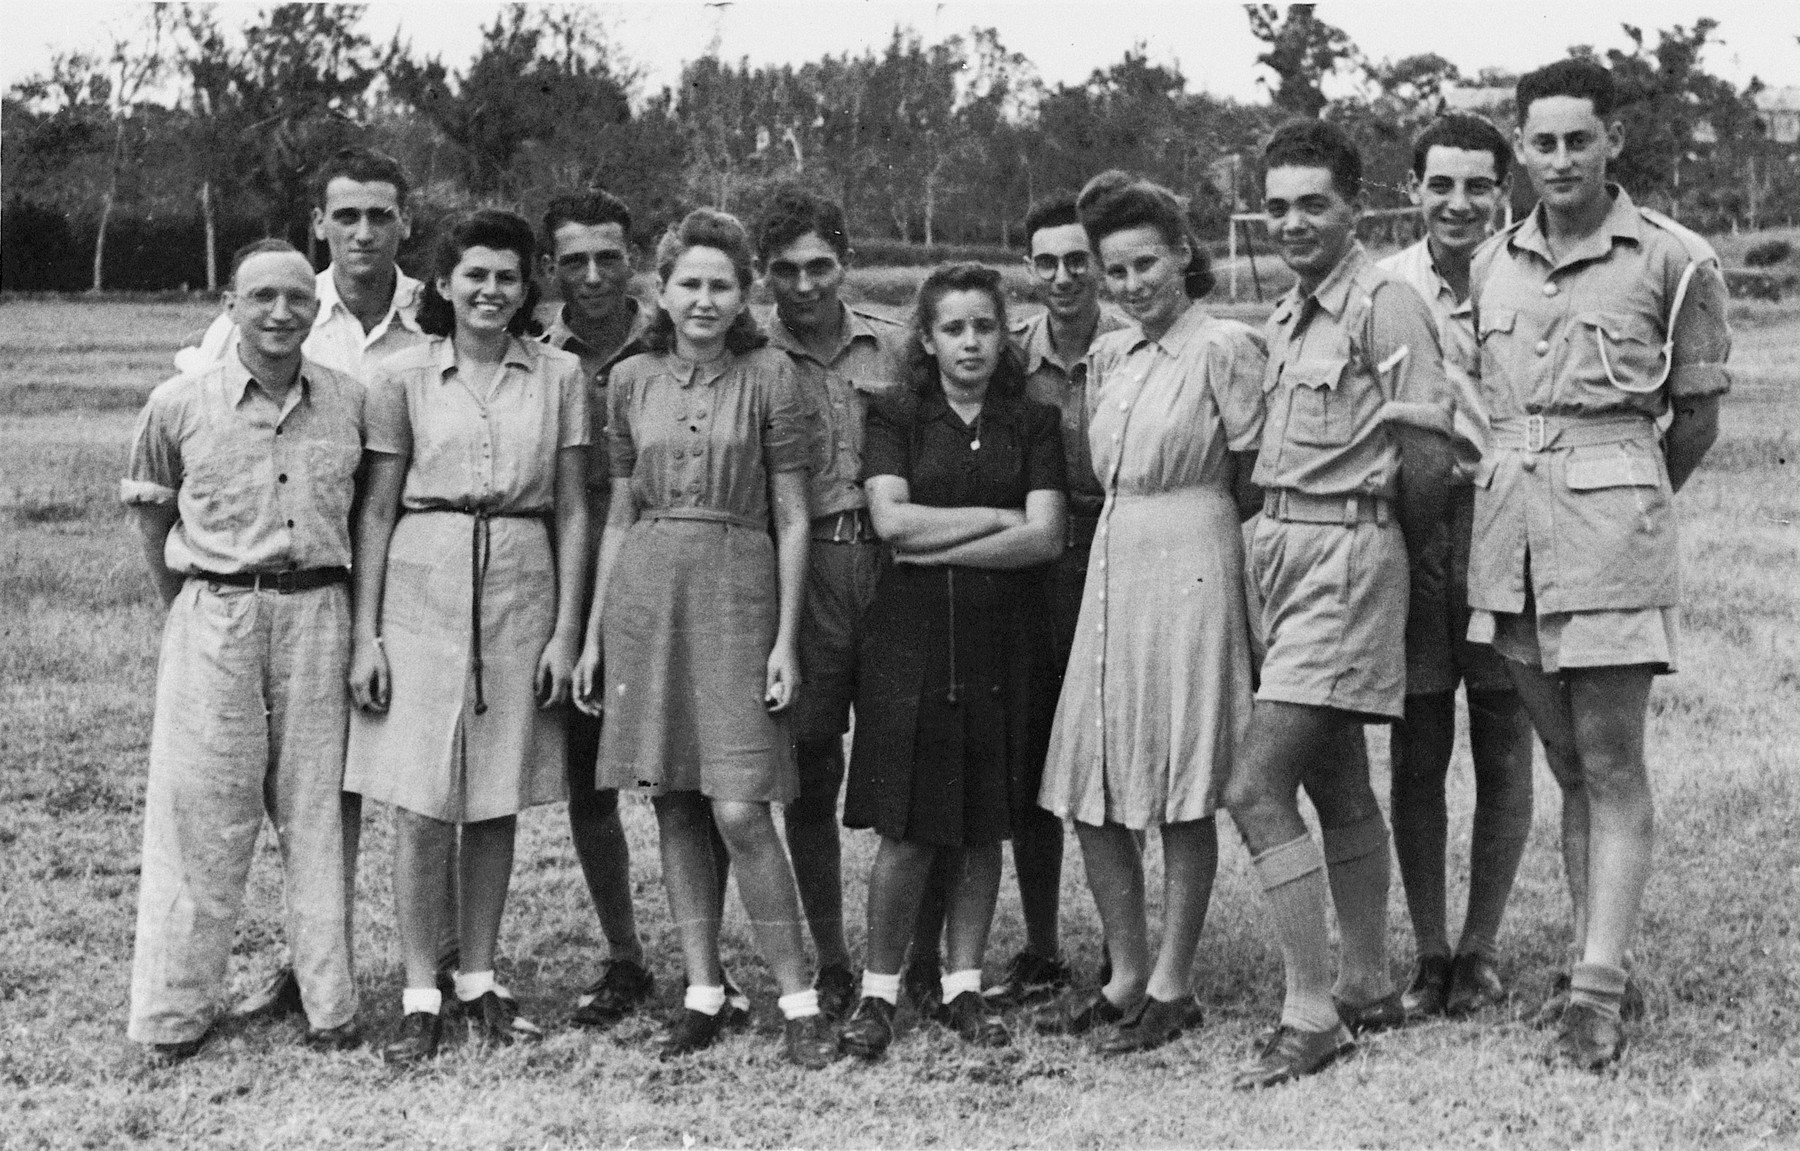 Jewish young people interned on the island of Mauritius.  Heinrich Wellisch is pictured fifth from the right.